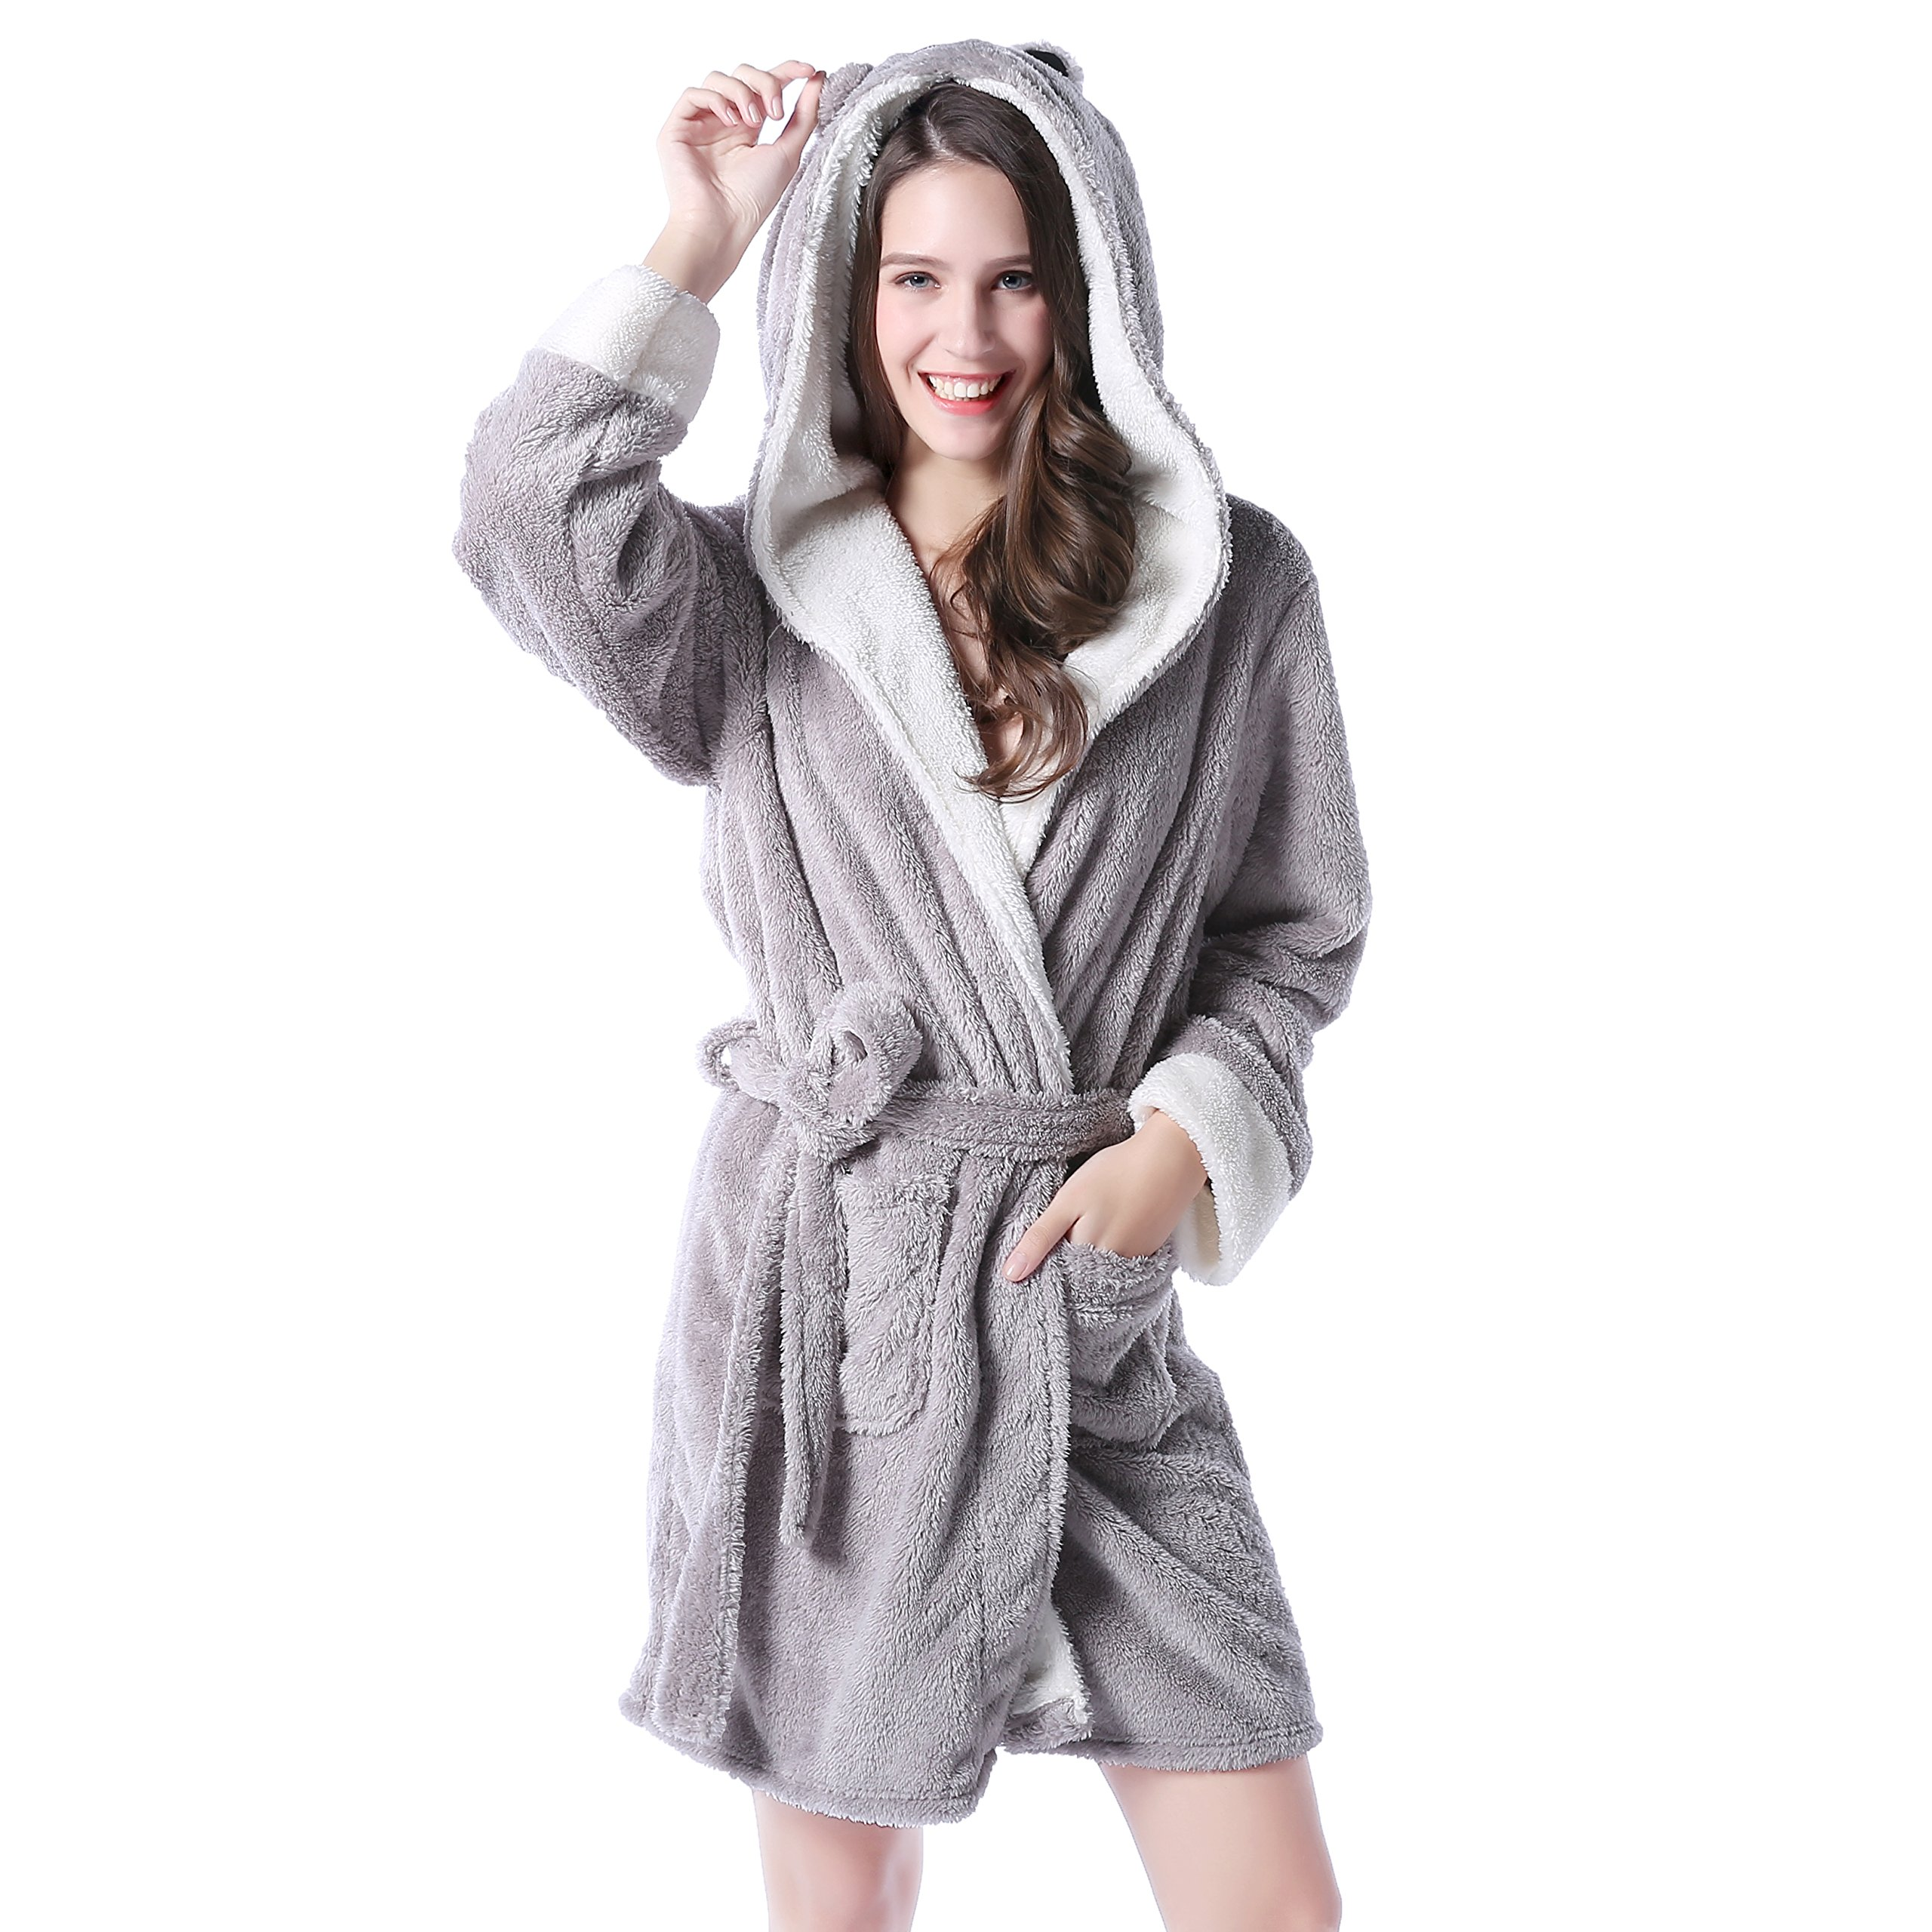 d0f5587d6e Richie House Women s Bathrobe Robe with Two Ears RHW2498 product image